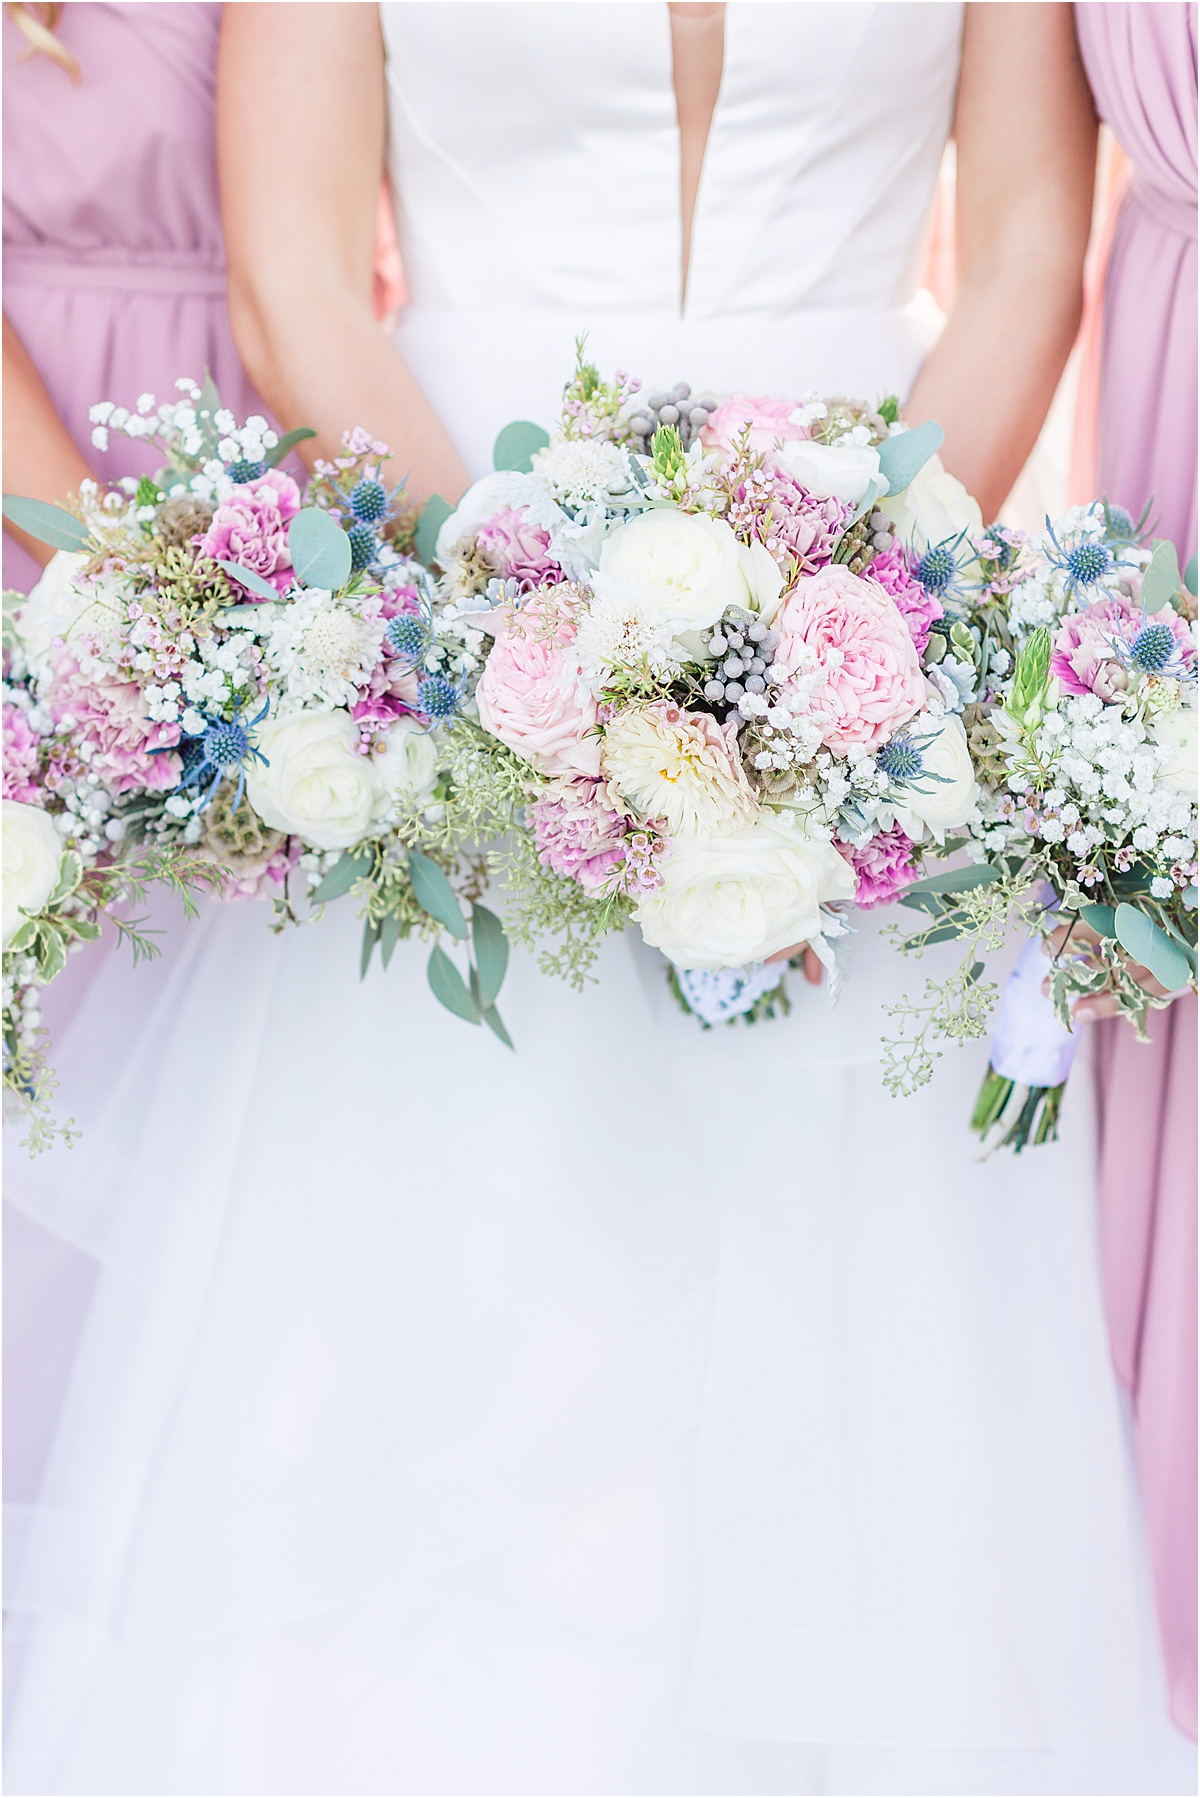 This Wedding Is All Kinds Of Pretty In Pink